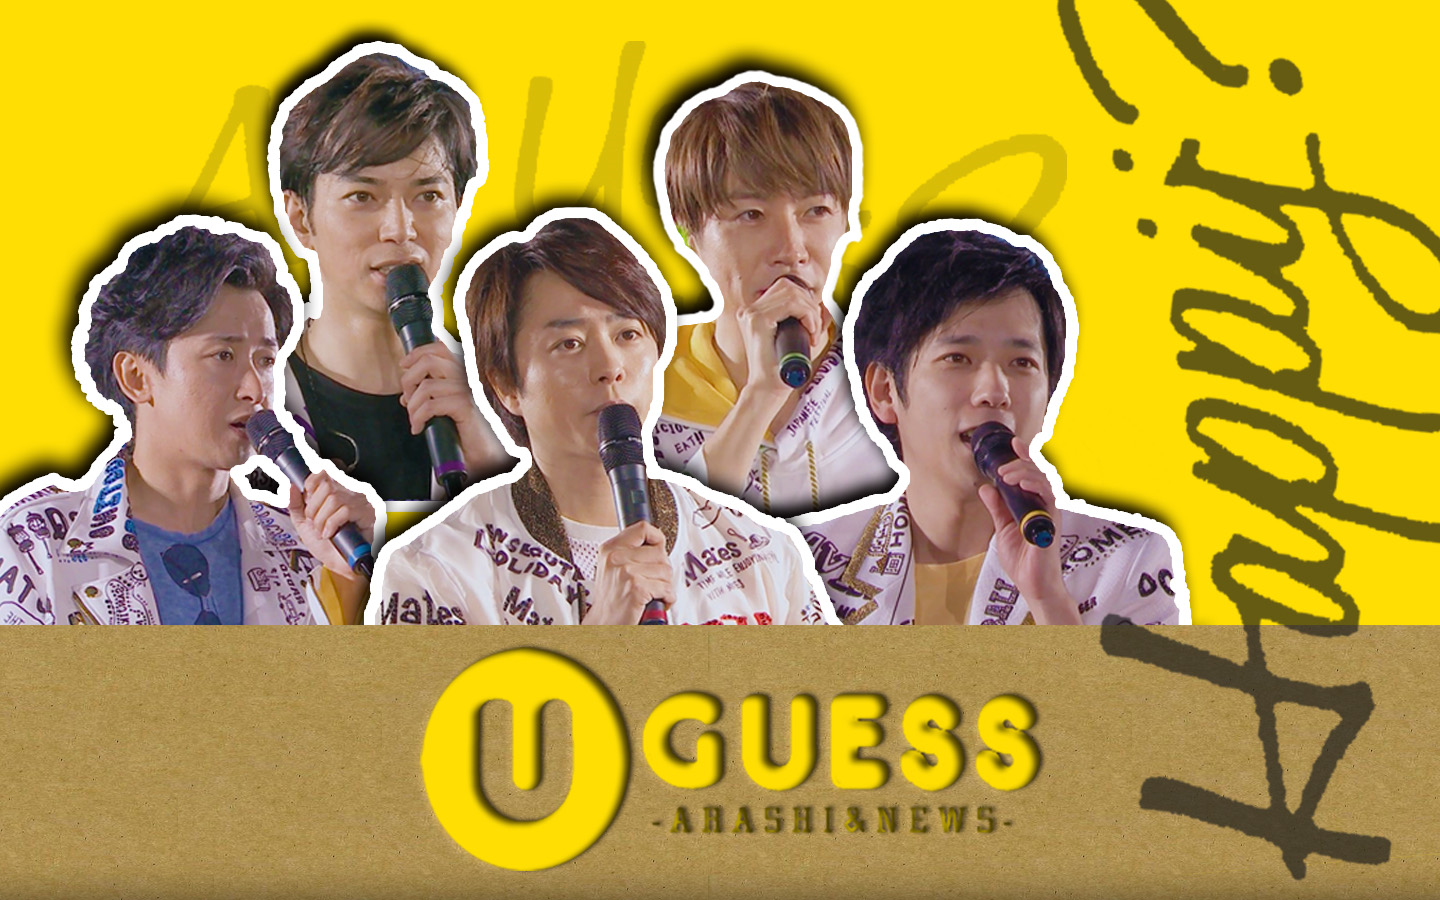 Tubget - Download video: arashi-live-tour-2016-2017-are-you